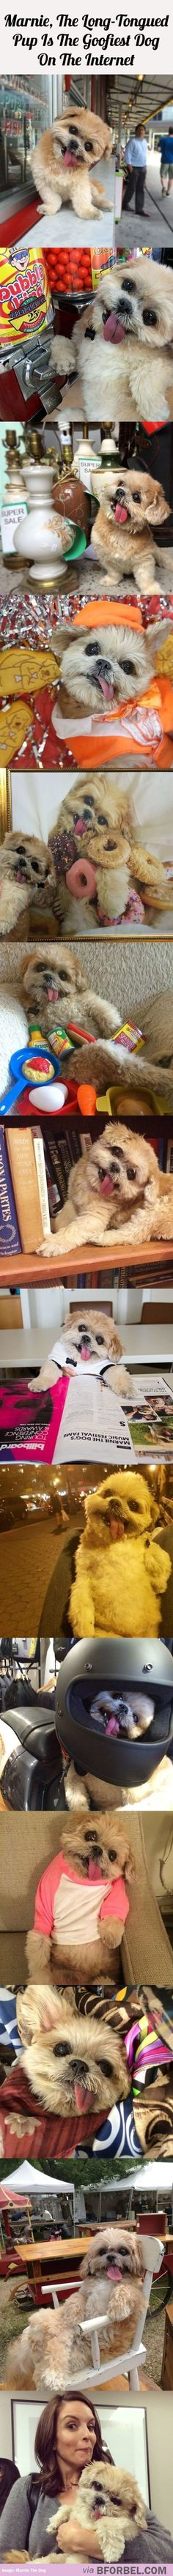 14 Images Of Marnie, The Goofiest Dog On The Internet That'll Make Your Day…